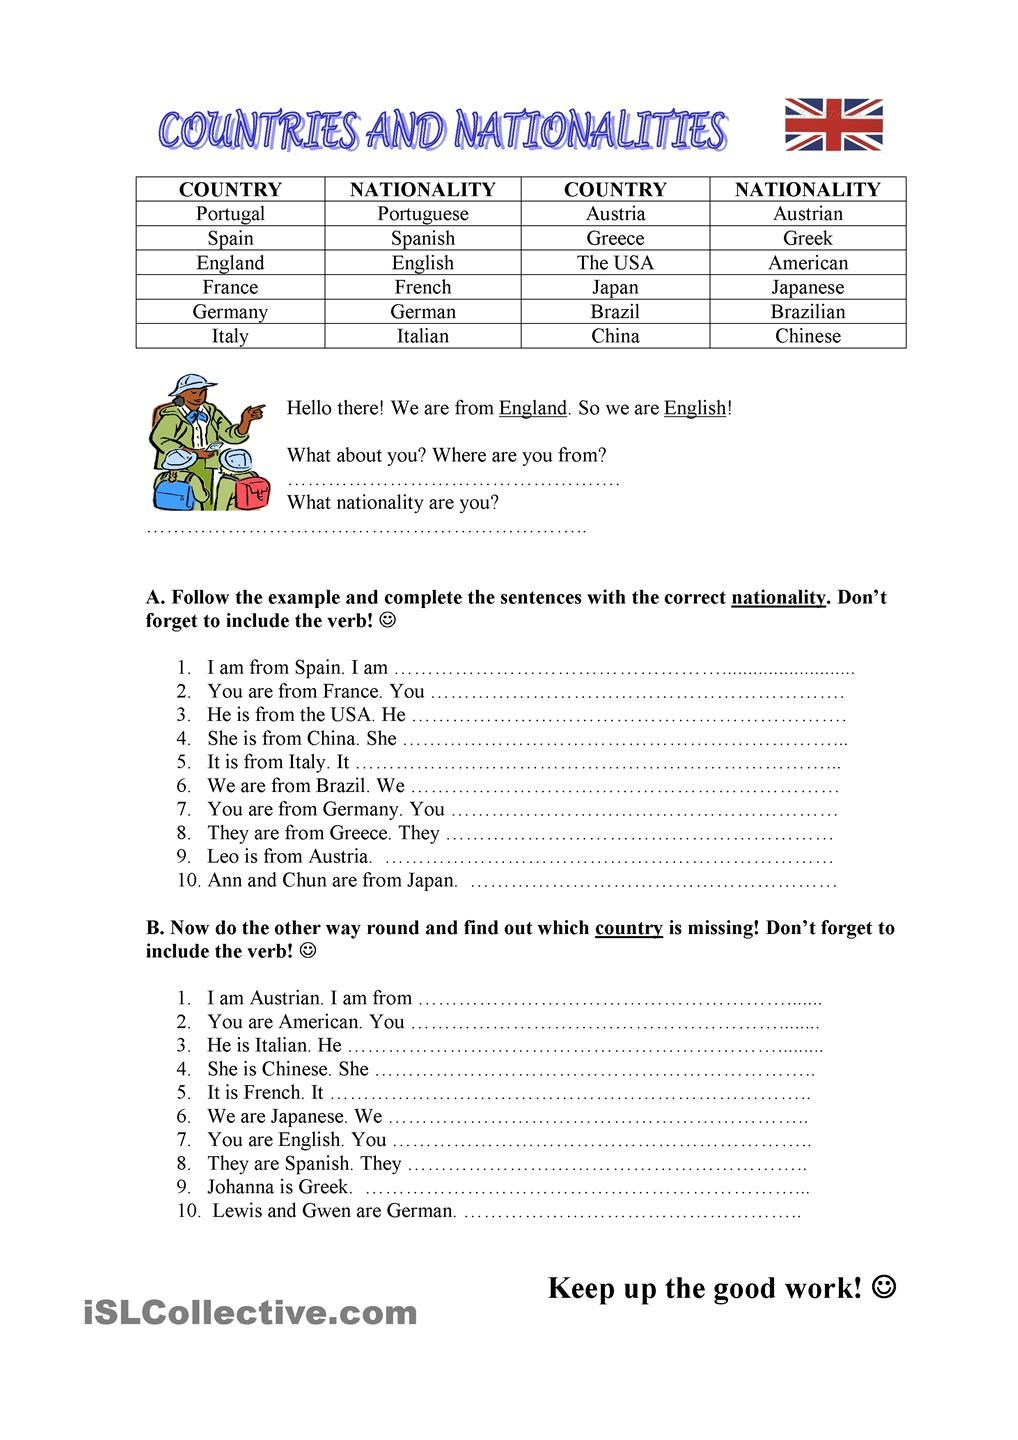 Countries / Nationalities  grammar  Pinterest  To be, Student  printable worksheets, education, learning, and worksheets Auxiliary Verbs Worksheets 2 1440 x 1018